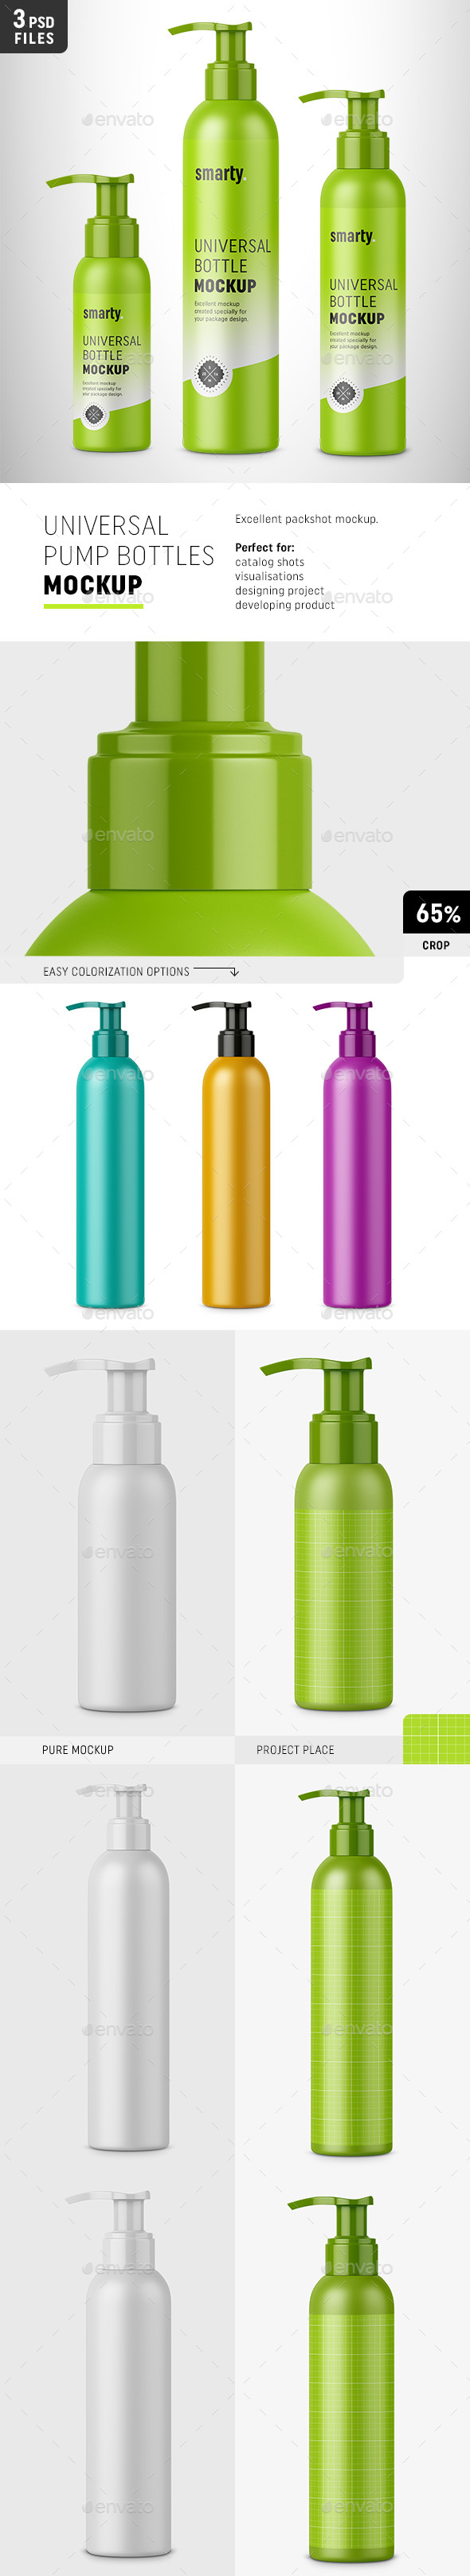 Plastic Bottles with Pump Mockups - Beauty Packaging